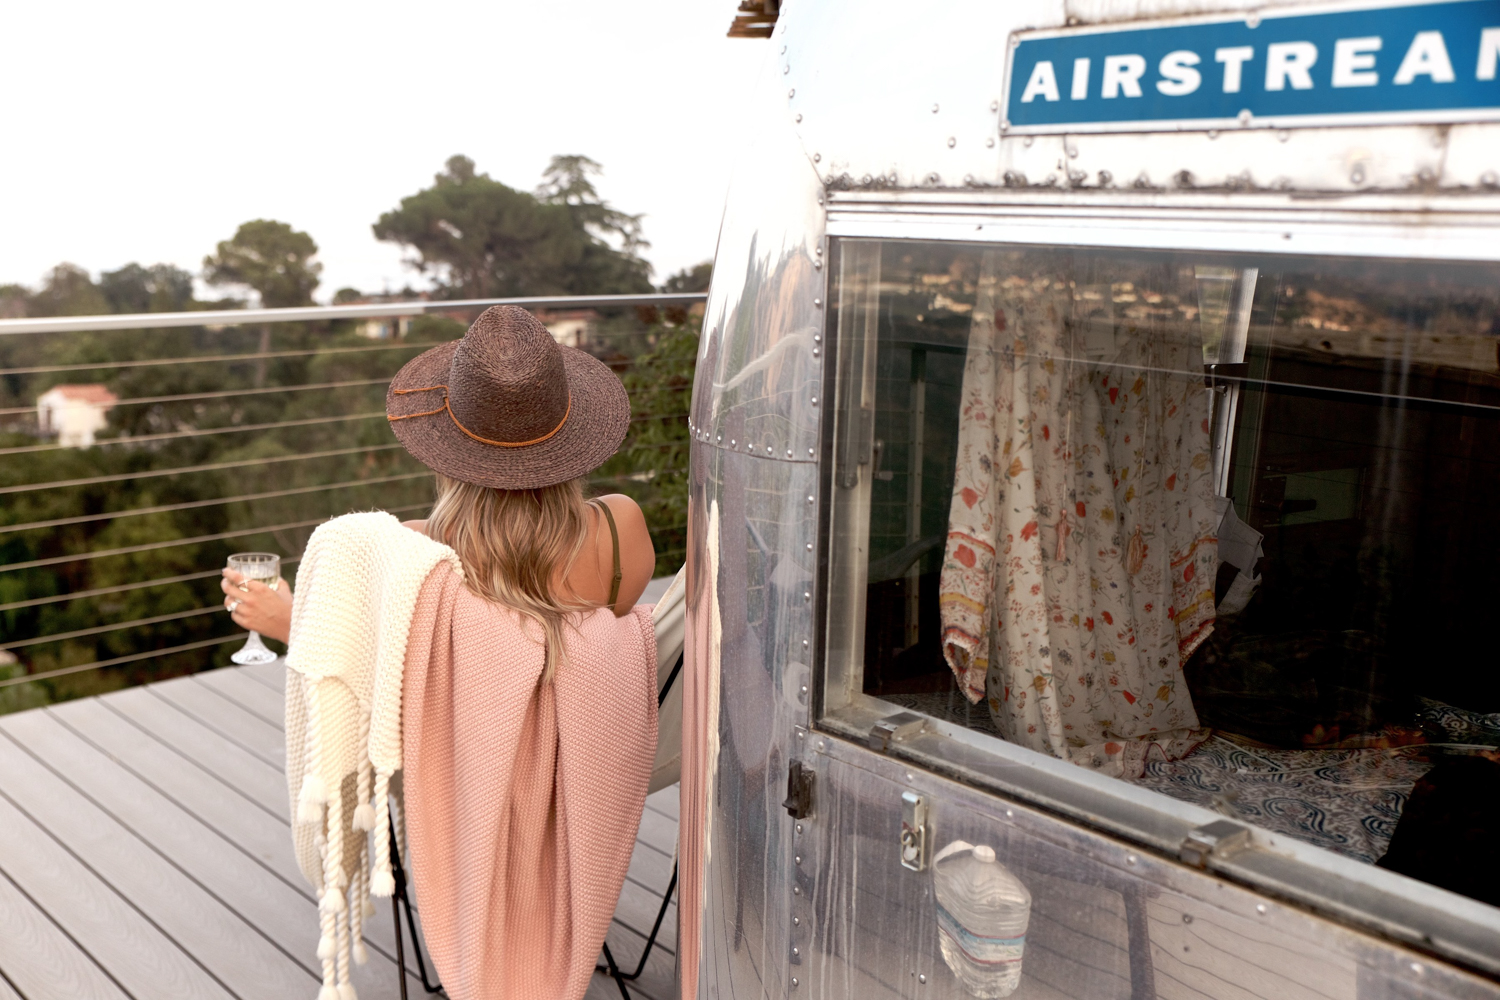 Airstream camping | A Fabulous Fete